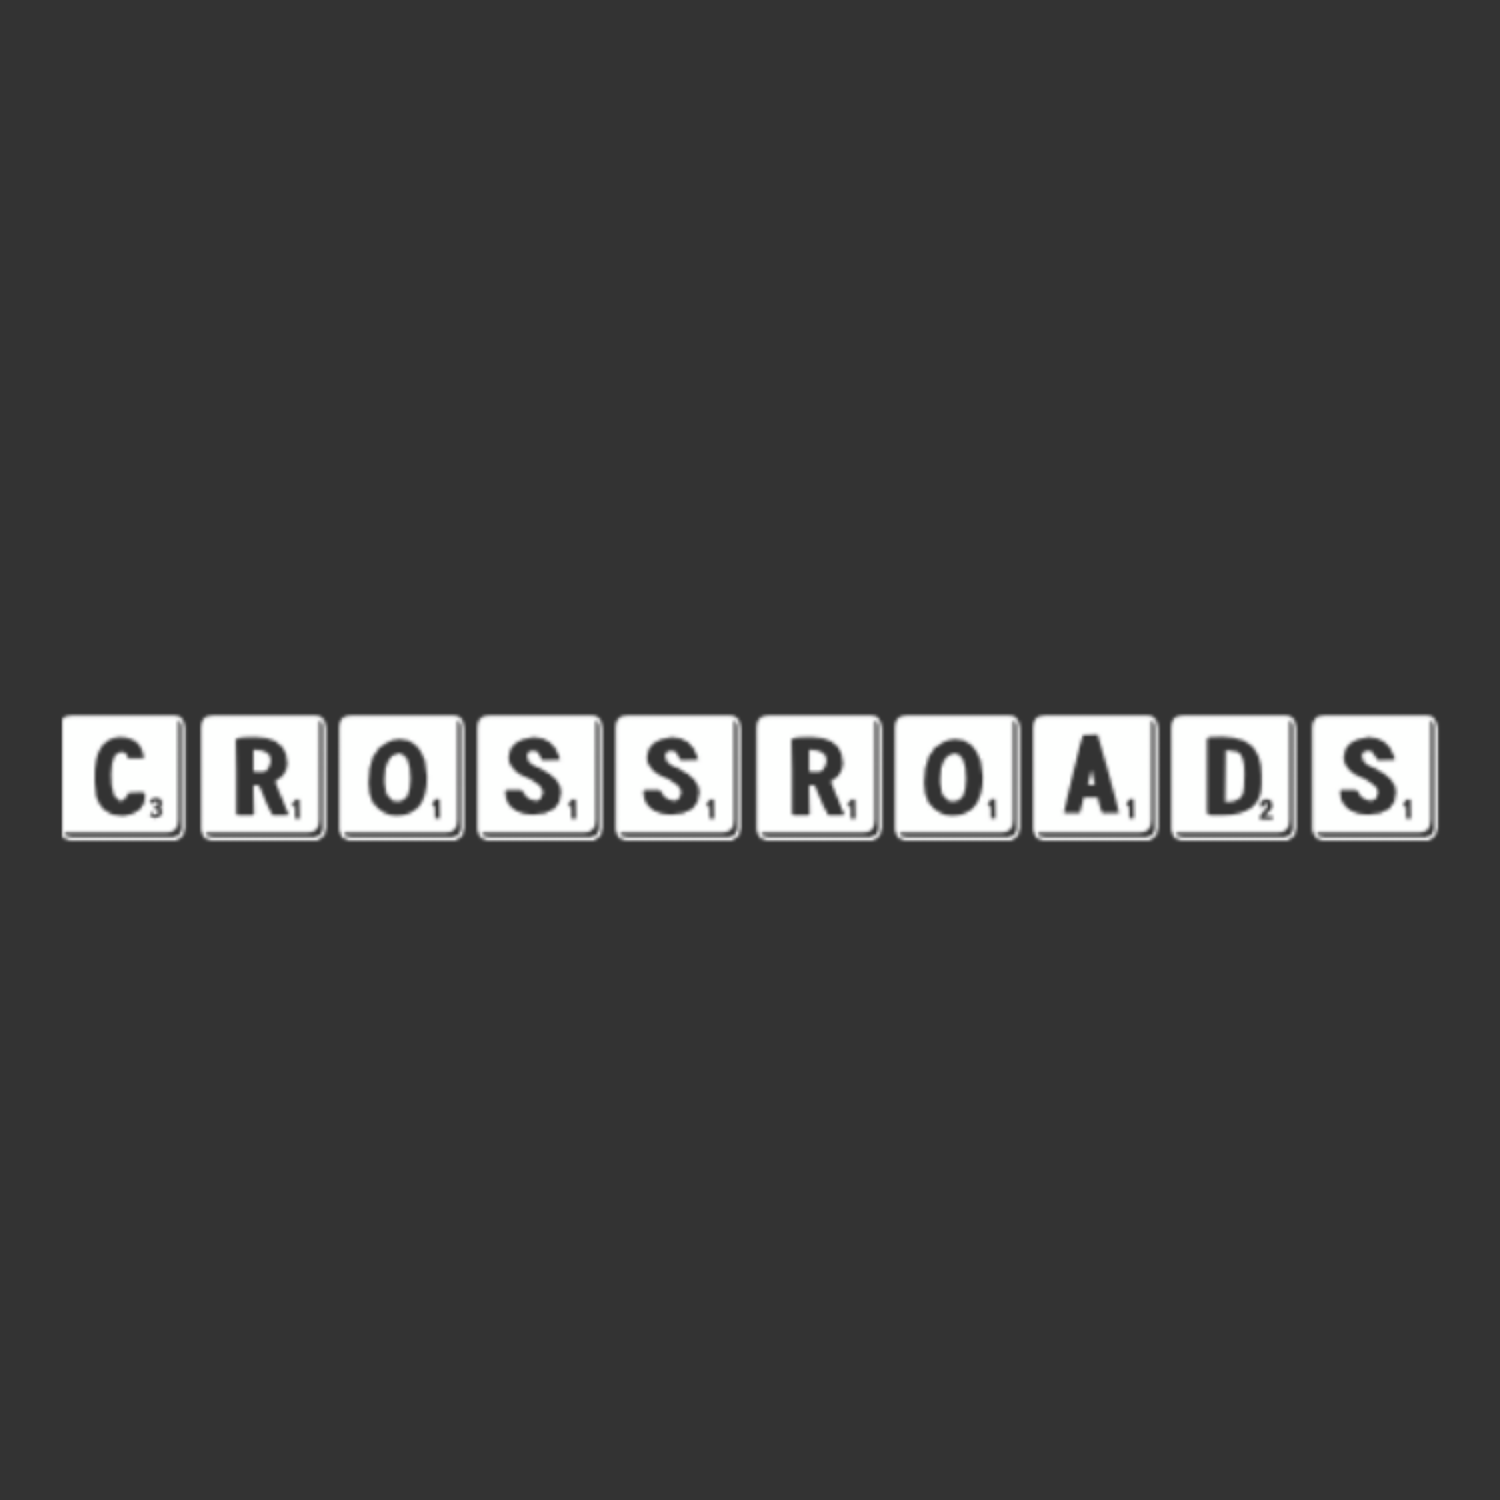 Welcome to Crossroads